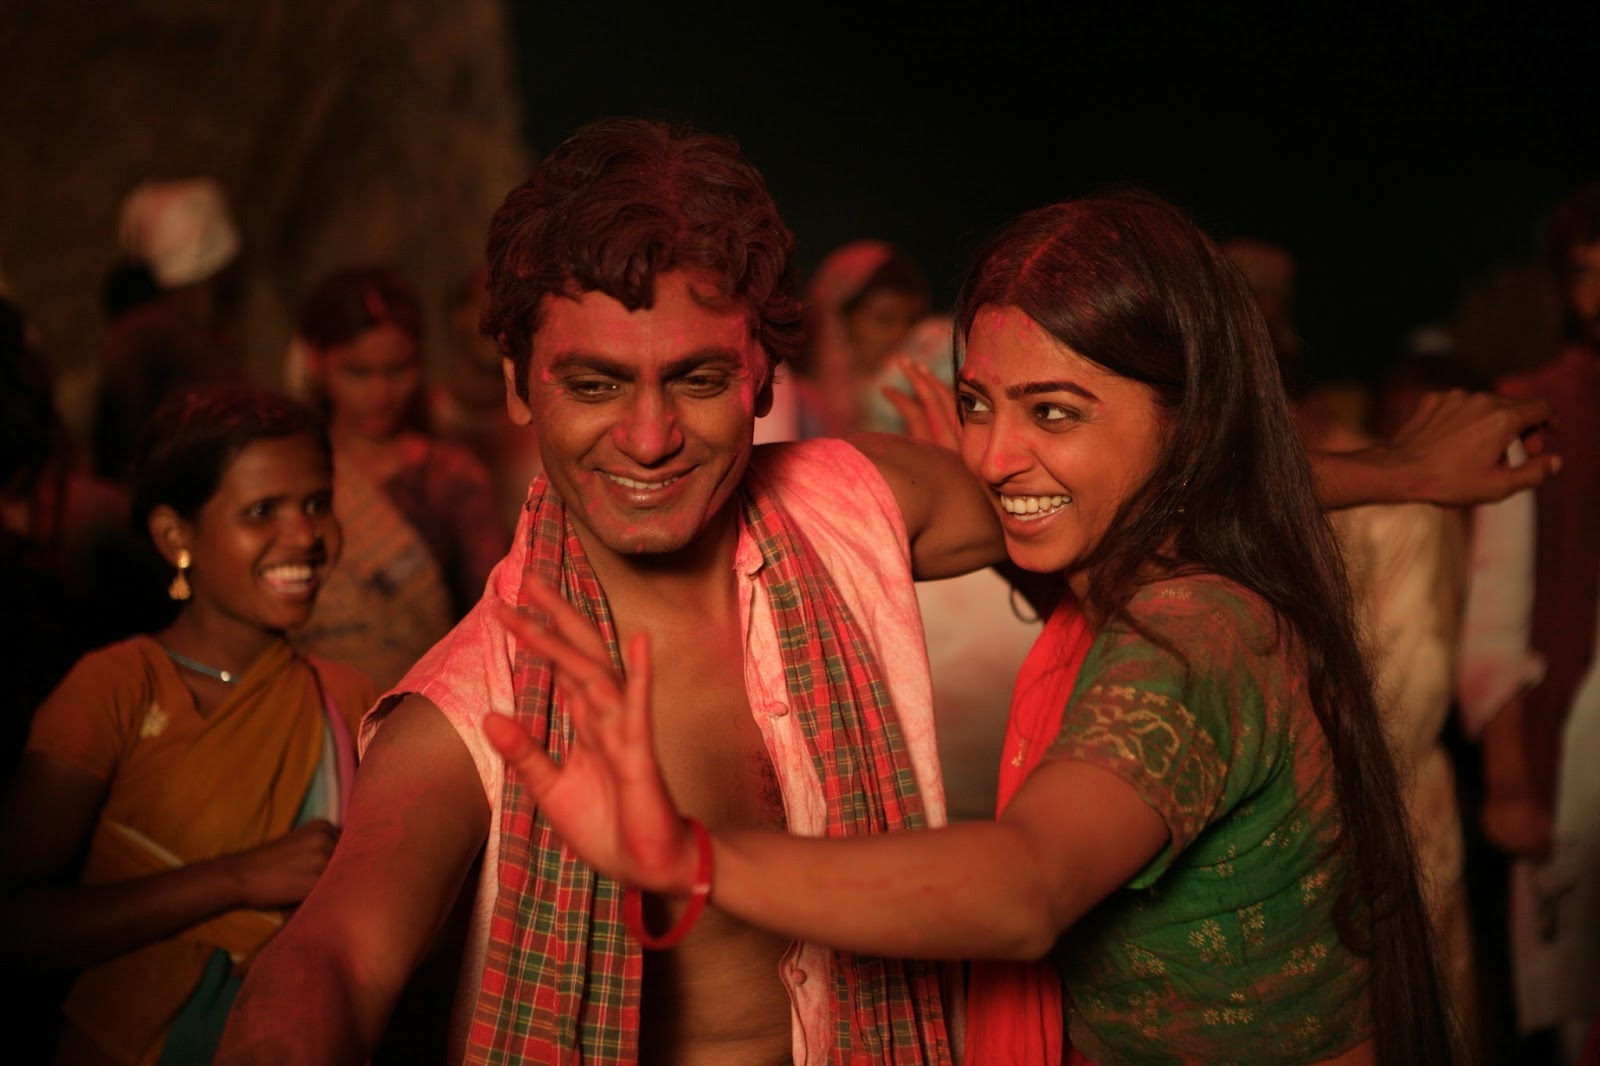 Watch : Manjhi – The Mountain Man Trailer Starring Nawazuddin Siddiqui And Radhika Apte